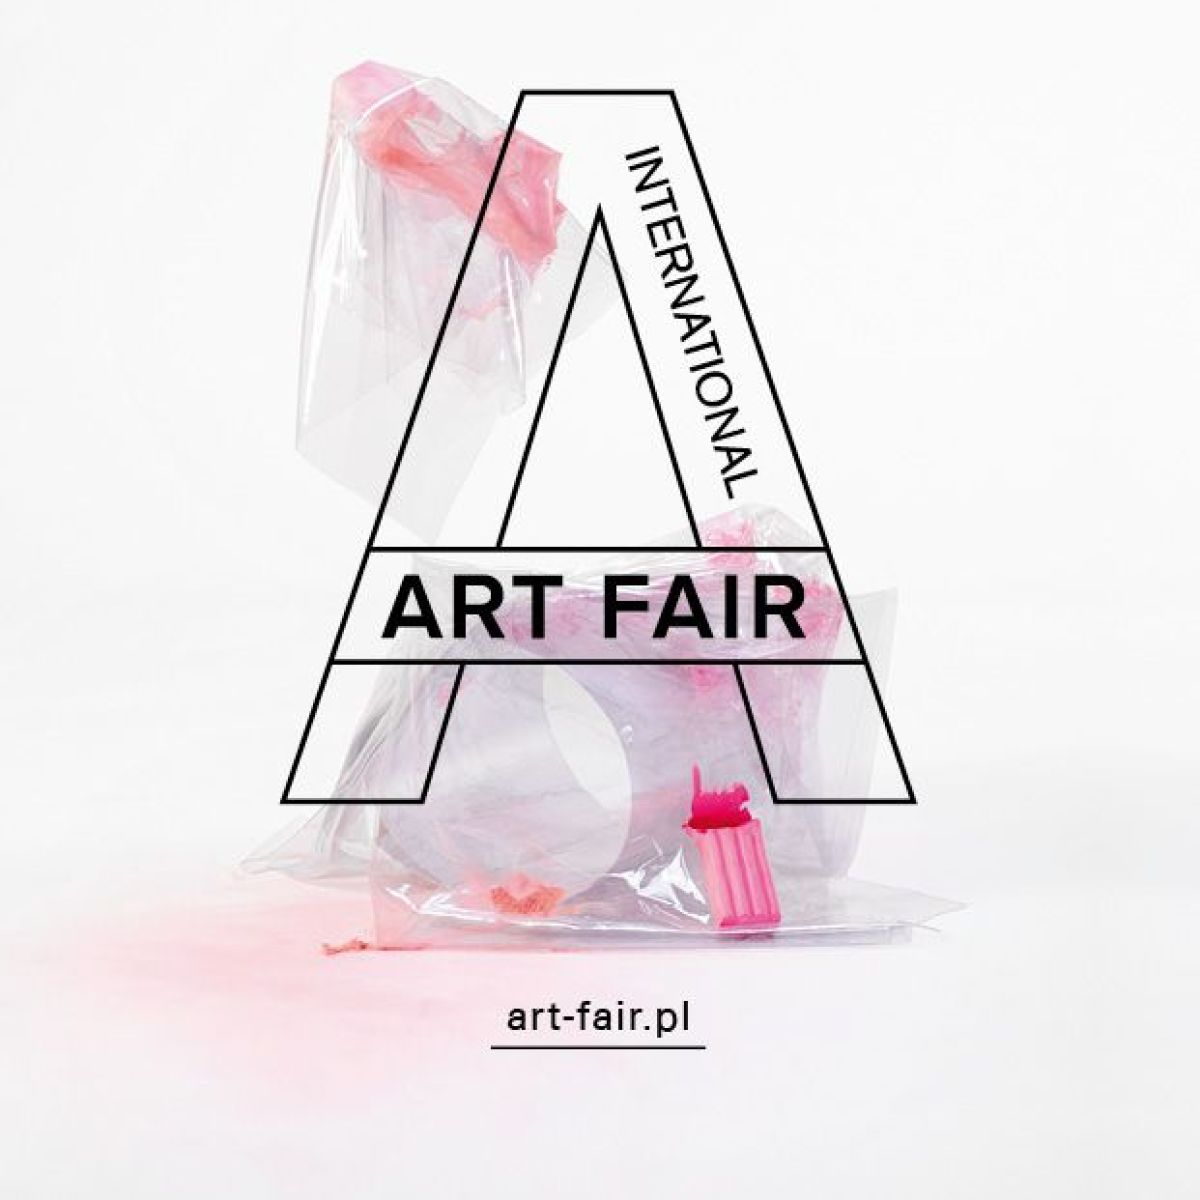 International Art Fair Warsaw 2016